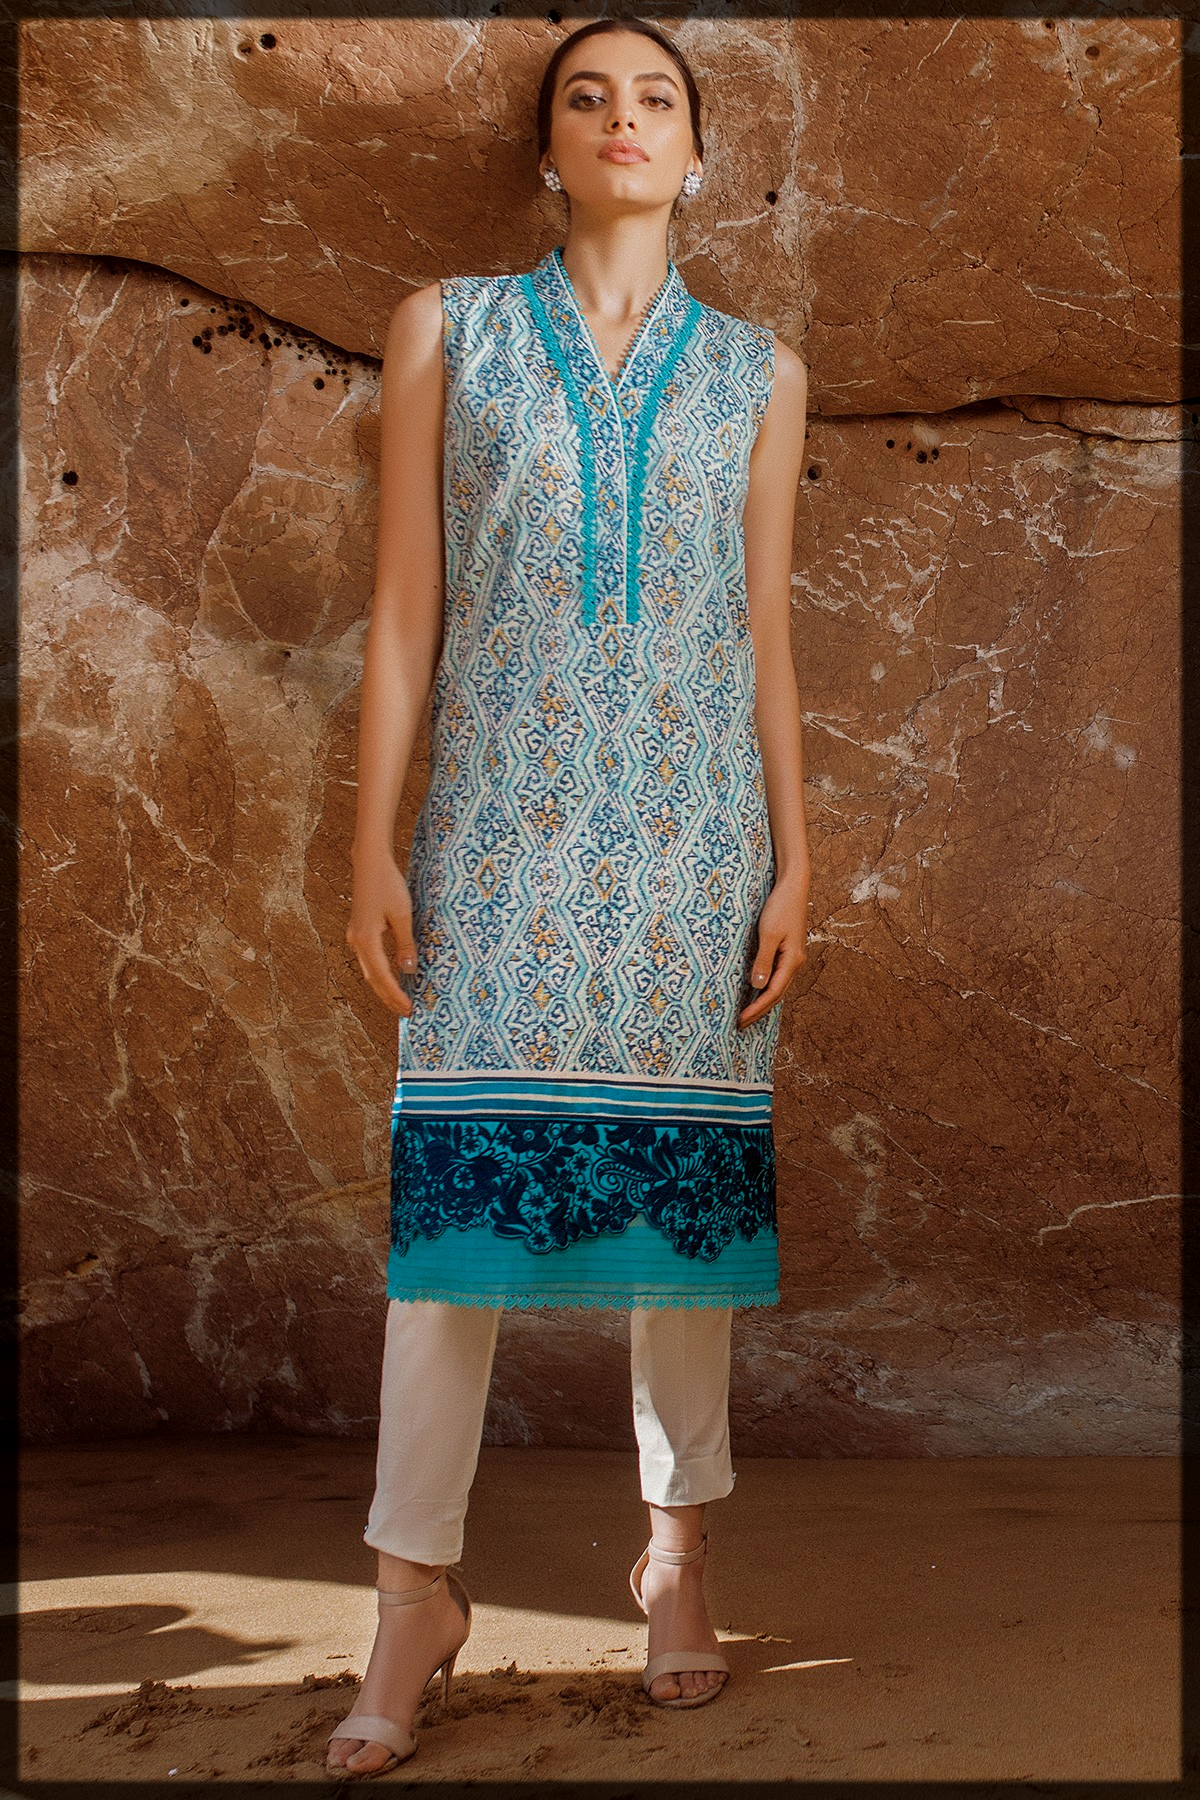 dazzling blue and white summer lawn dress